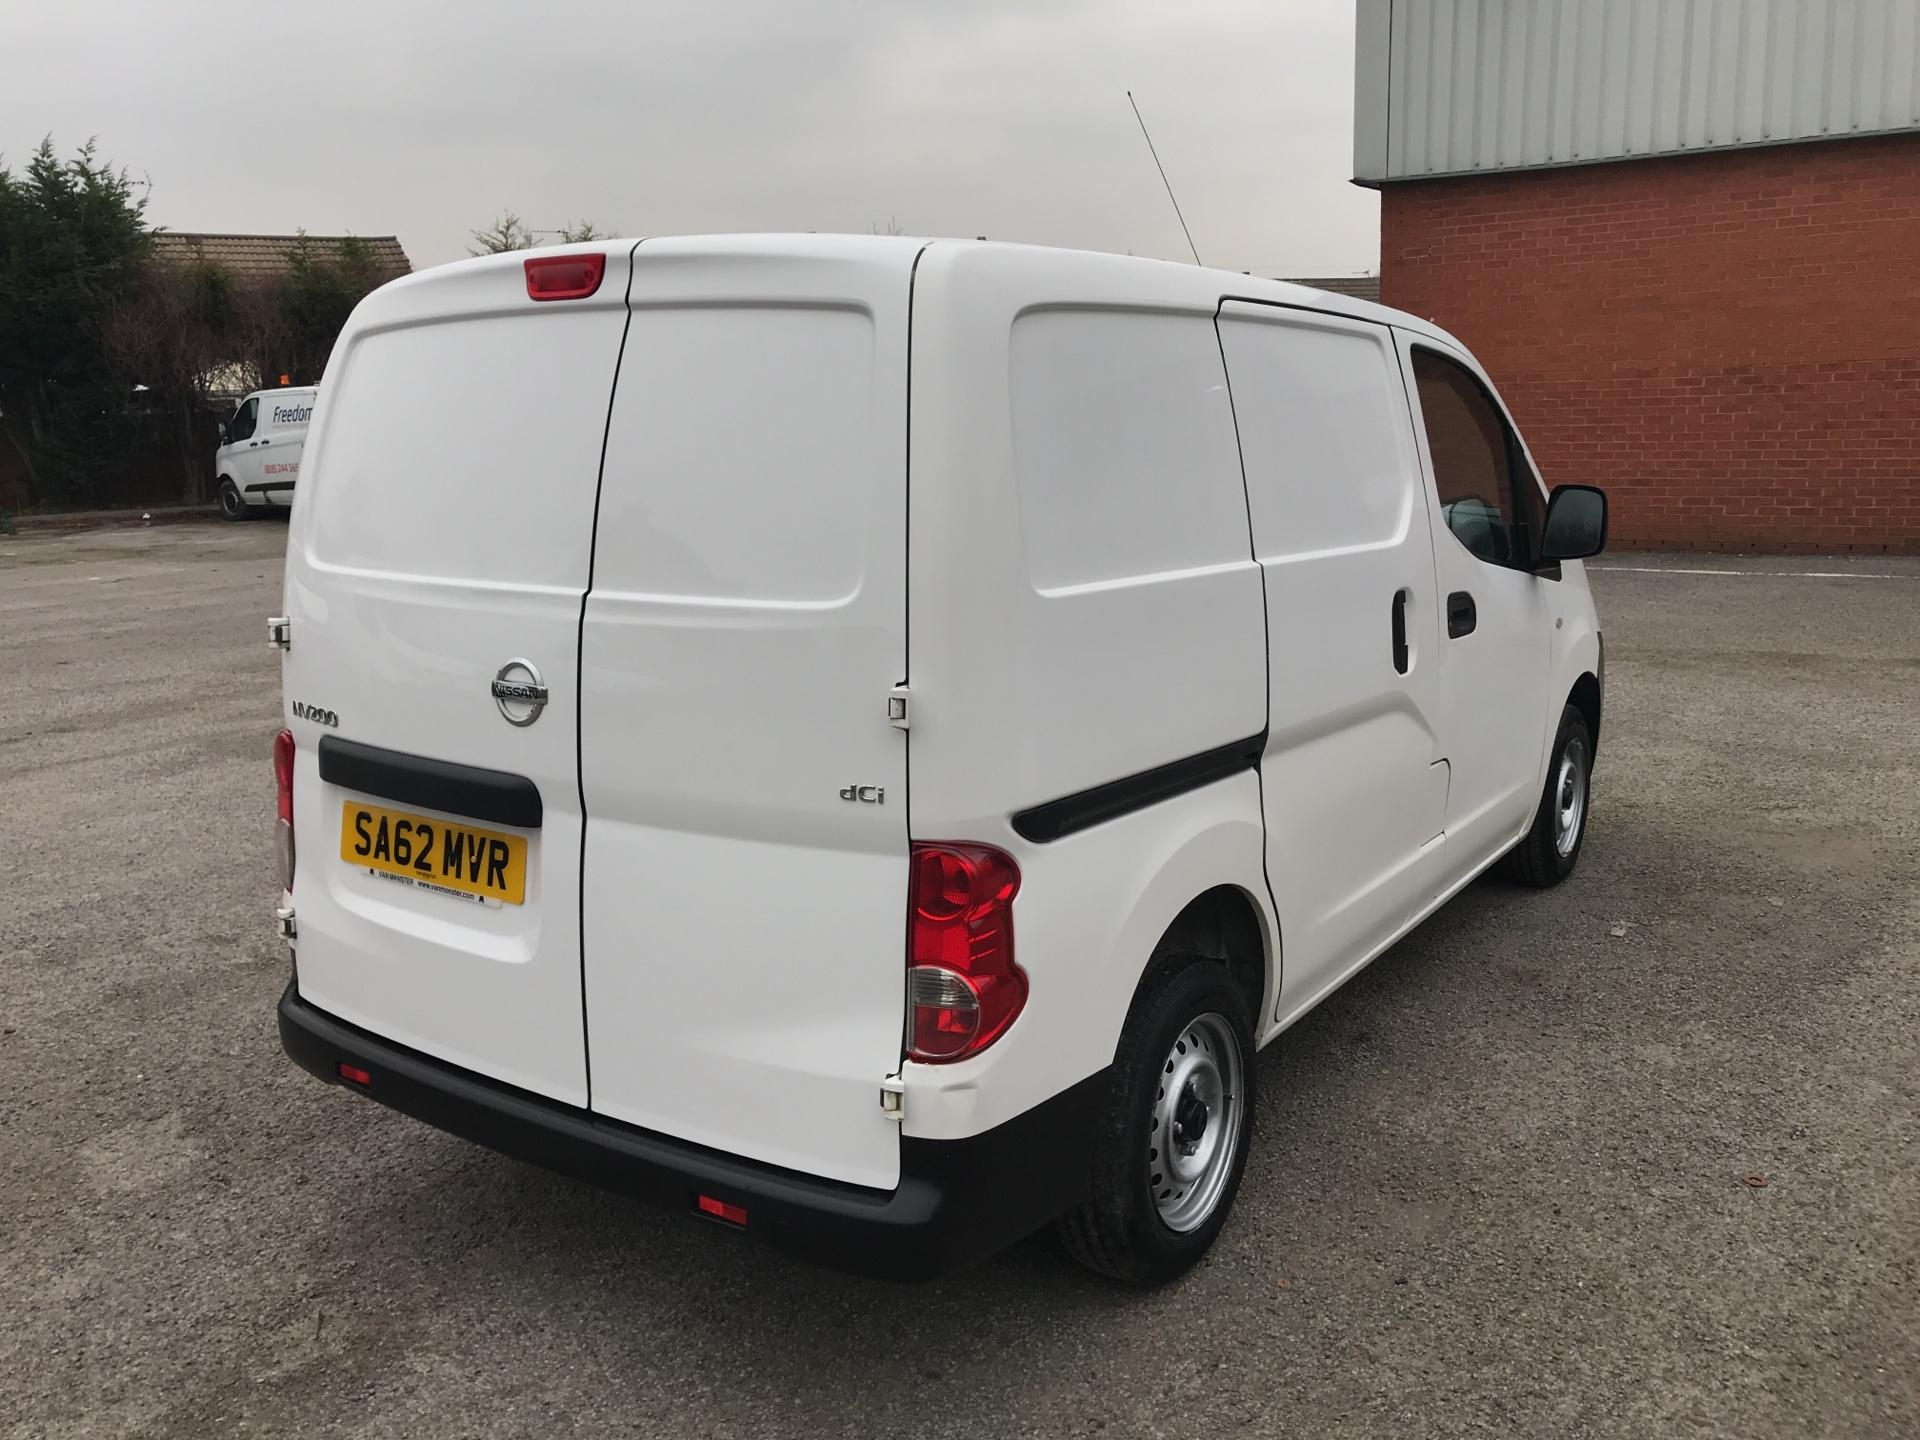 2012 Nissan Nv200 1.5 Dci 89 Se Van EURO 5 -*VALUE RANGE VEHICLE - CONDITION REFLECTED IN PRICE* (SA62MVR) Image 3